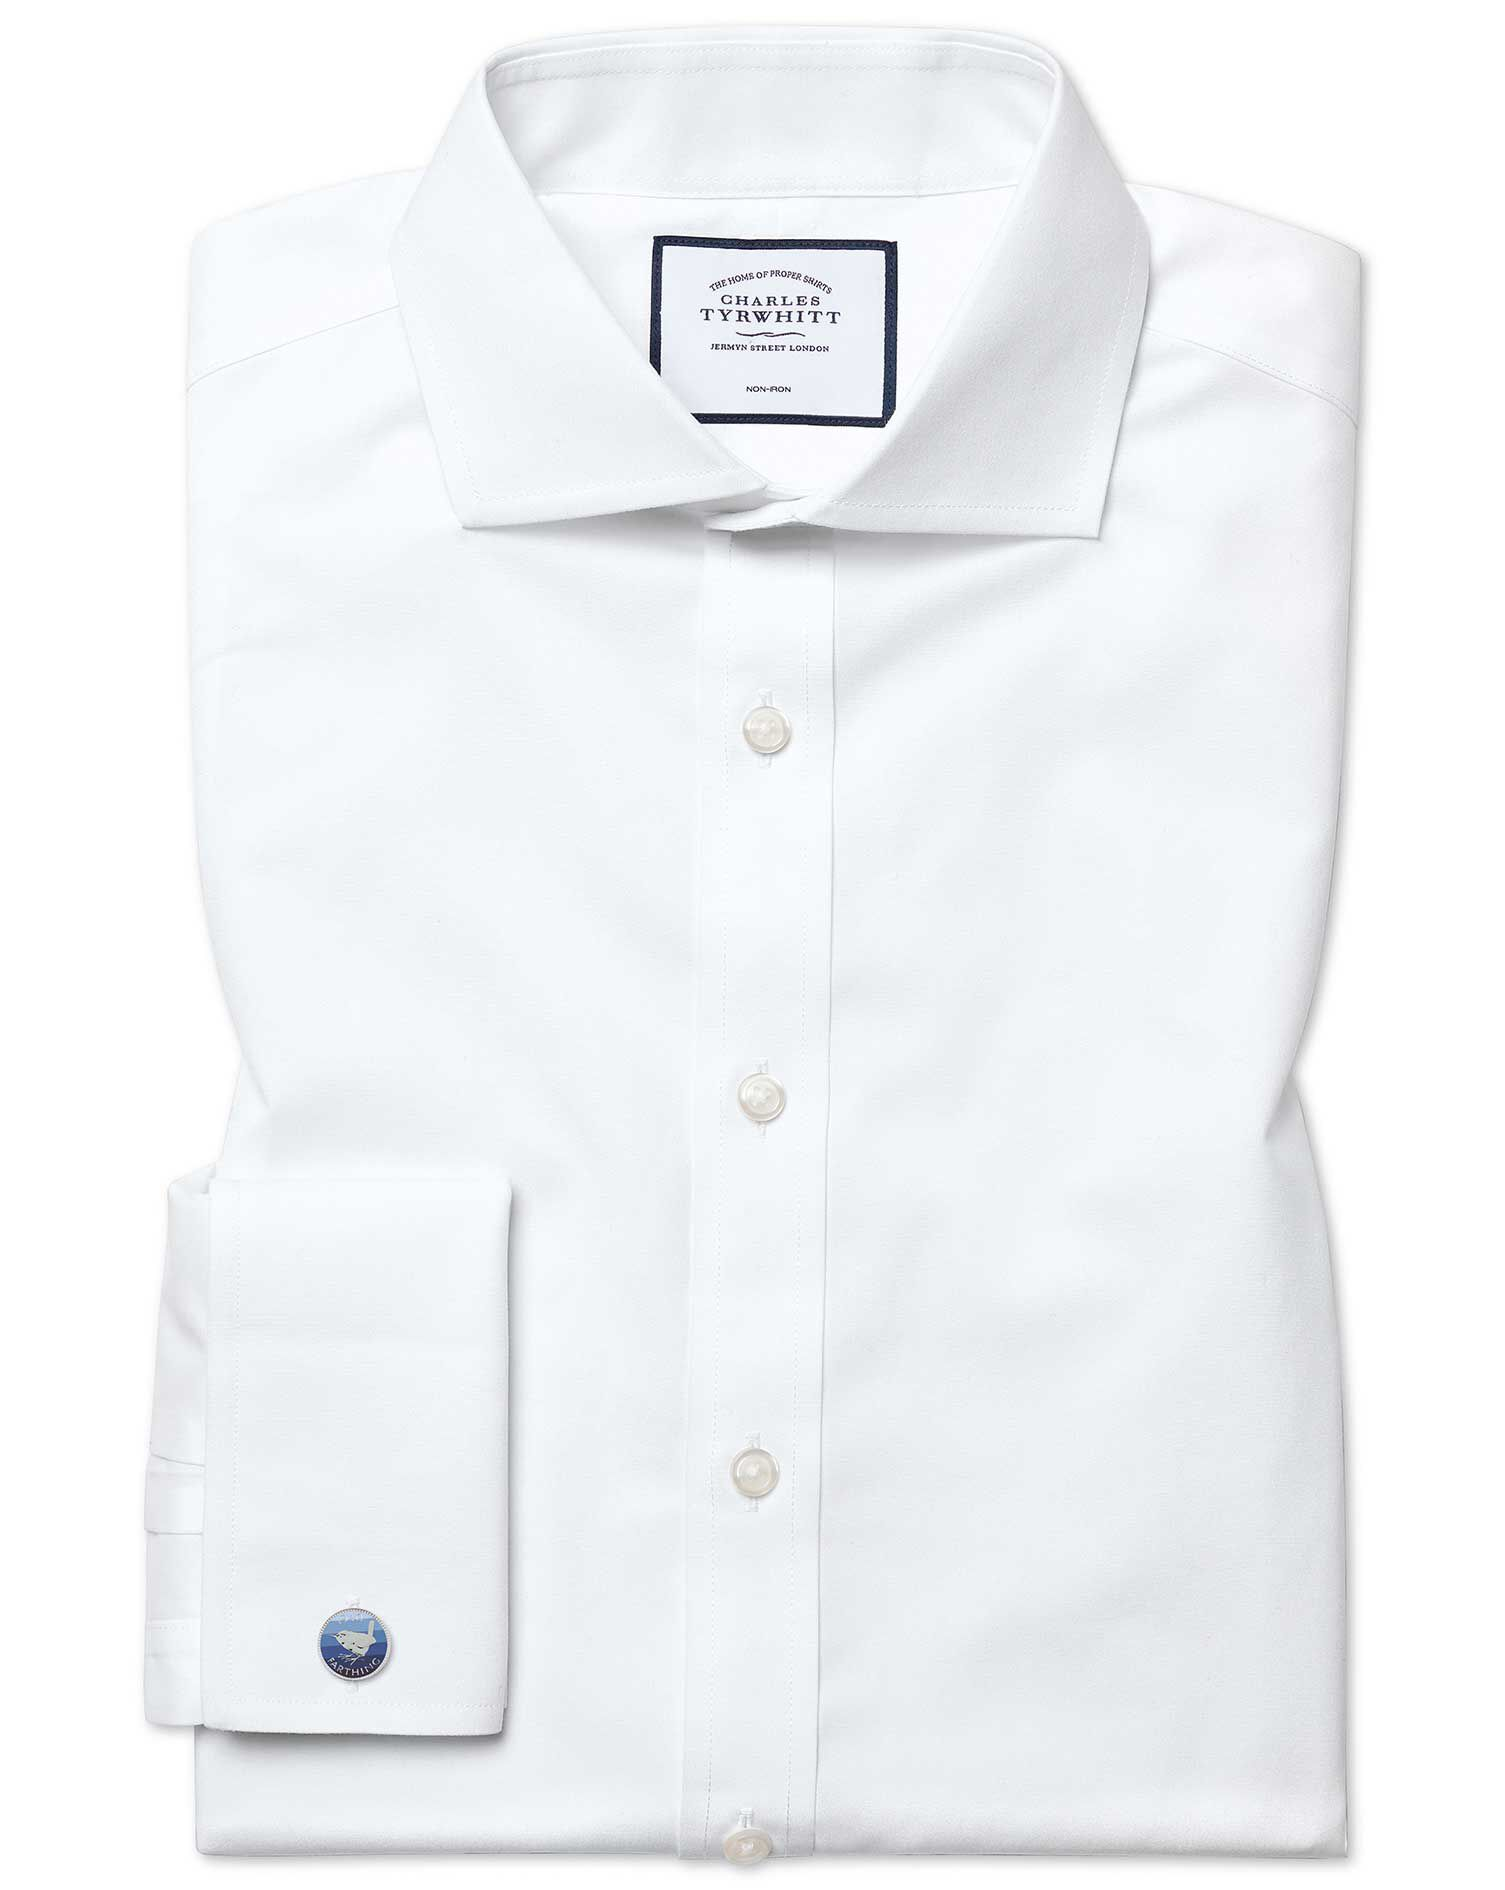 Classic Fit Cutaway Non-Iron Poplin White Cotton Formal Shirt Single Cuff Size 15/35 by Charles Tyrw